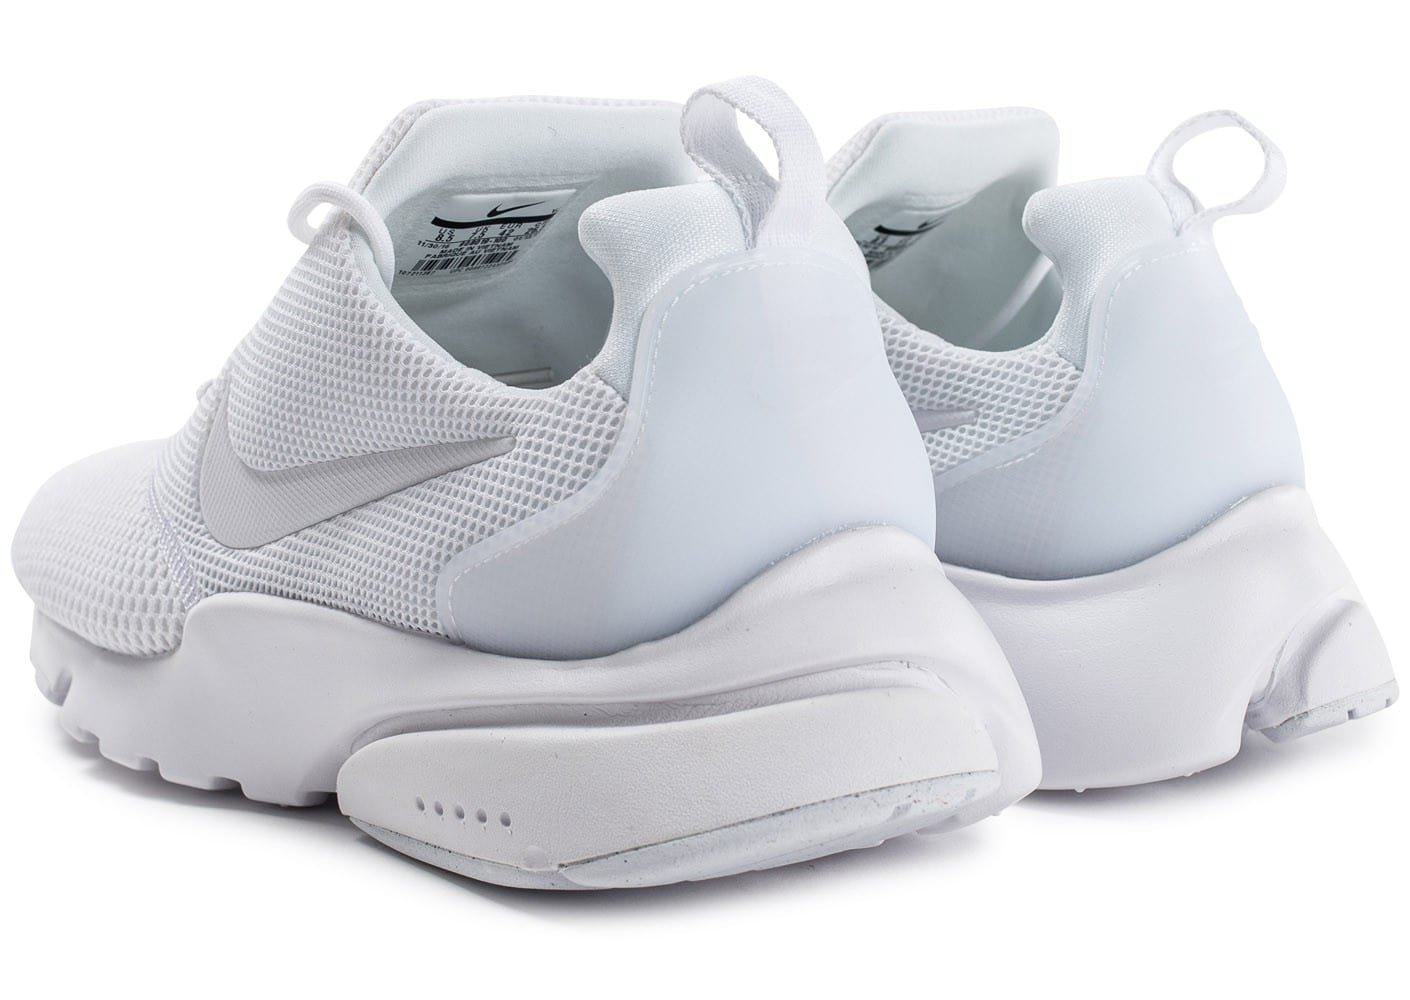 Nike Presto Fly triple blanc Chaussures Baskets homme